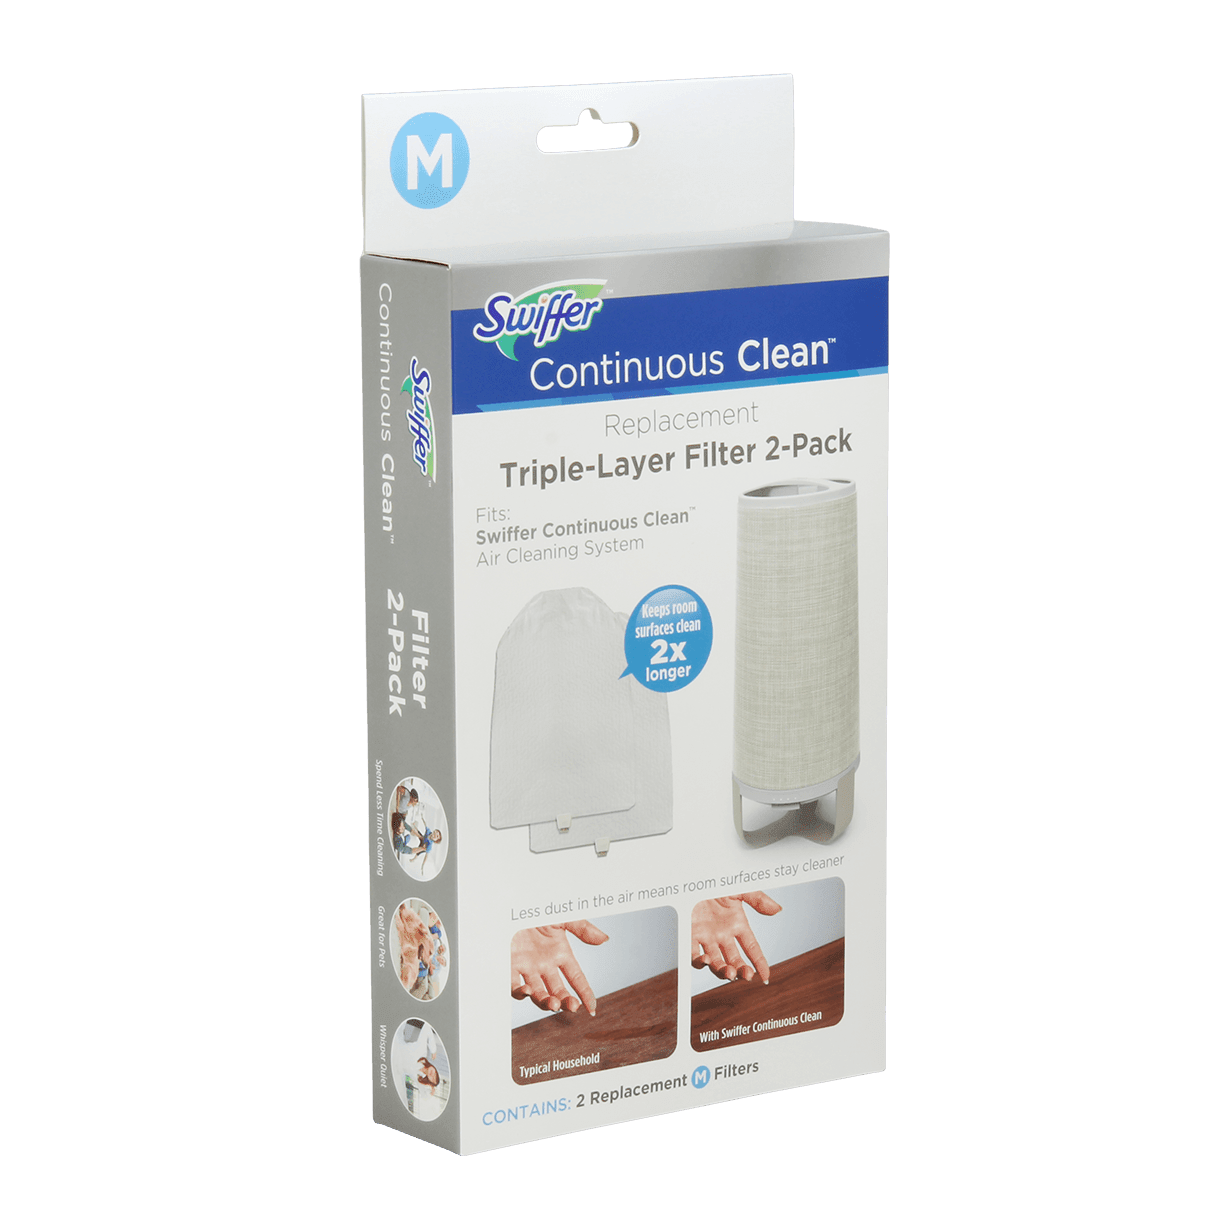 Swiffer Continuous Clean Filters